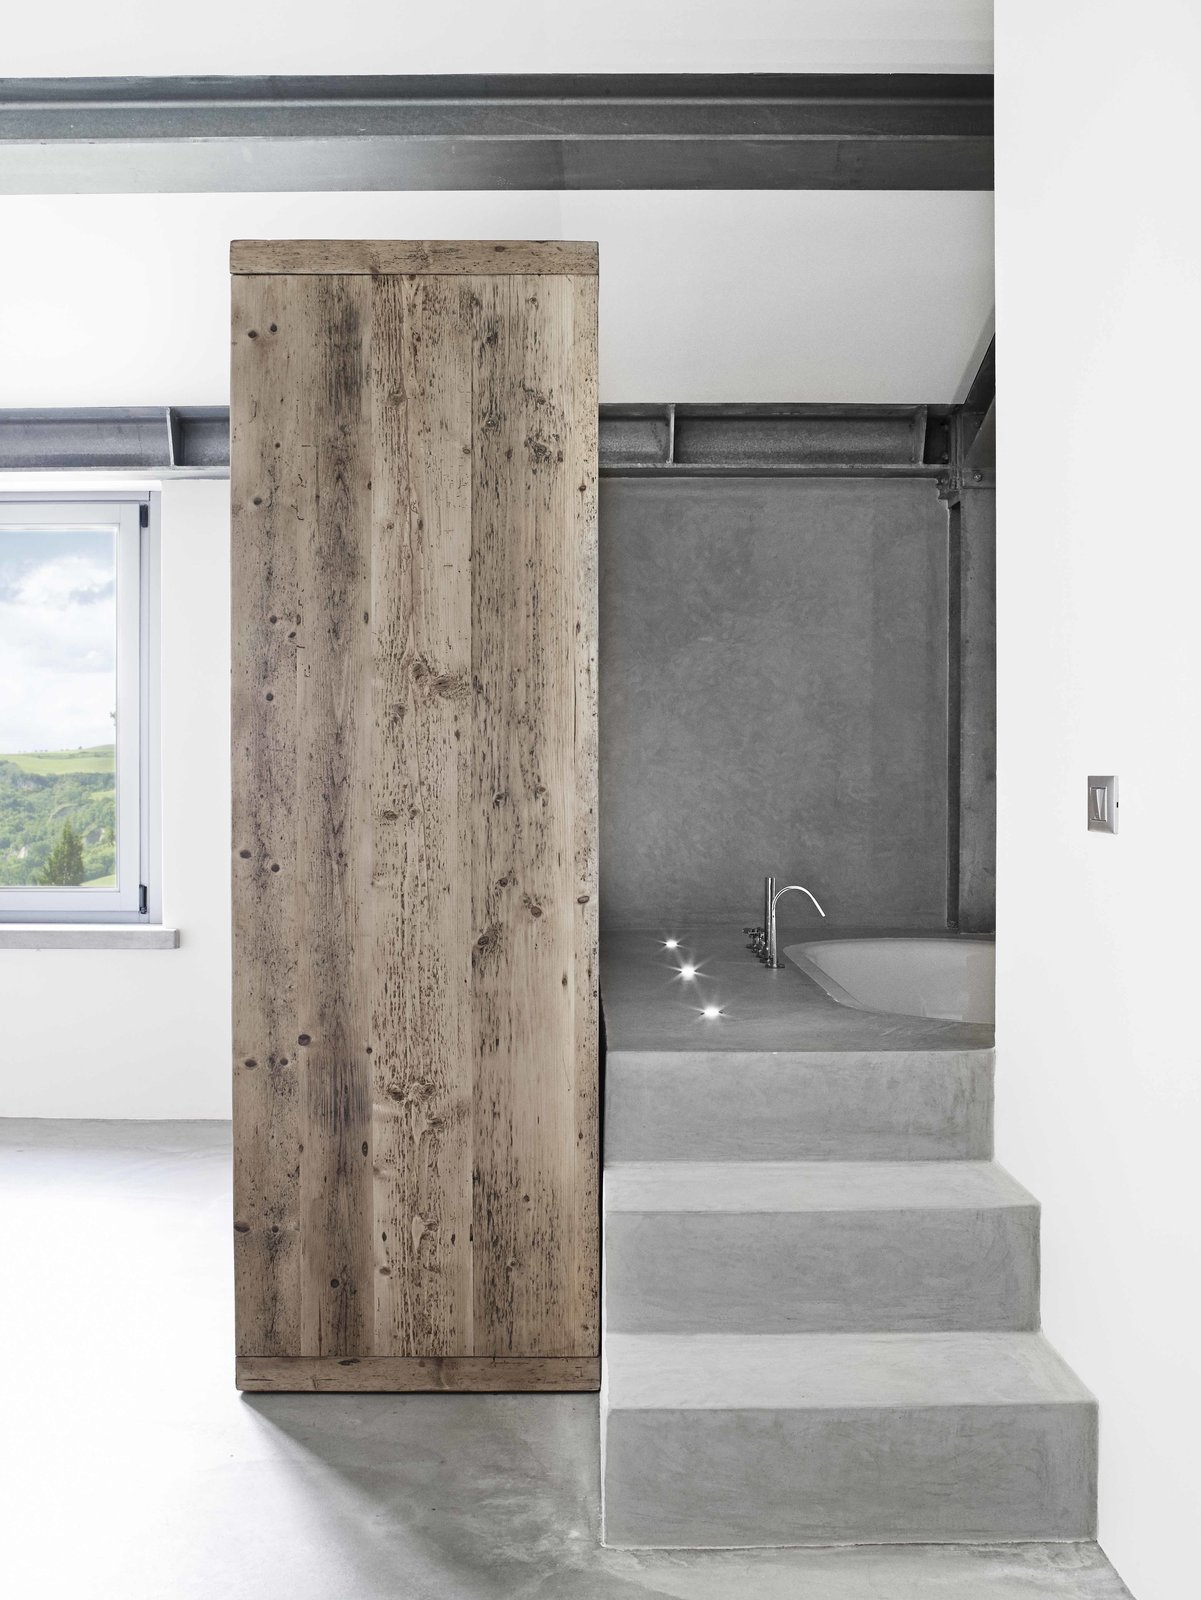 Bath Room, Undermount Tub, Soaking Tub, Concrete Floor, and Accent Lighting  Photo 10 of 11 in Stay in a Modern, Industrial Home That's Hidden Inside a Traditional Tuscan Villa